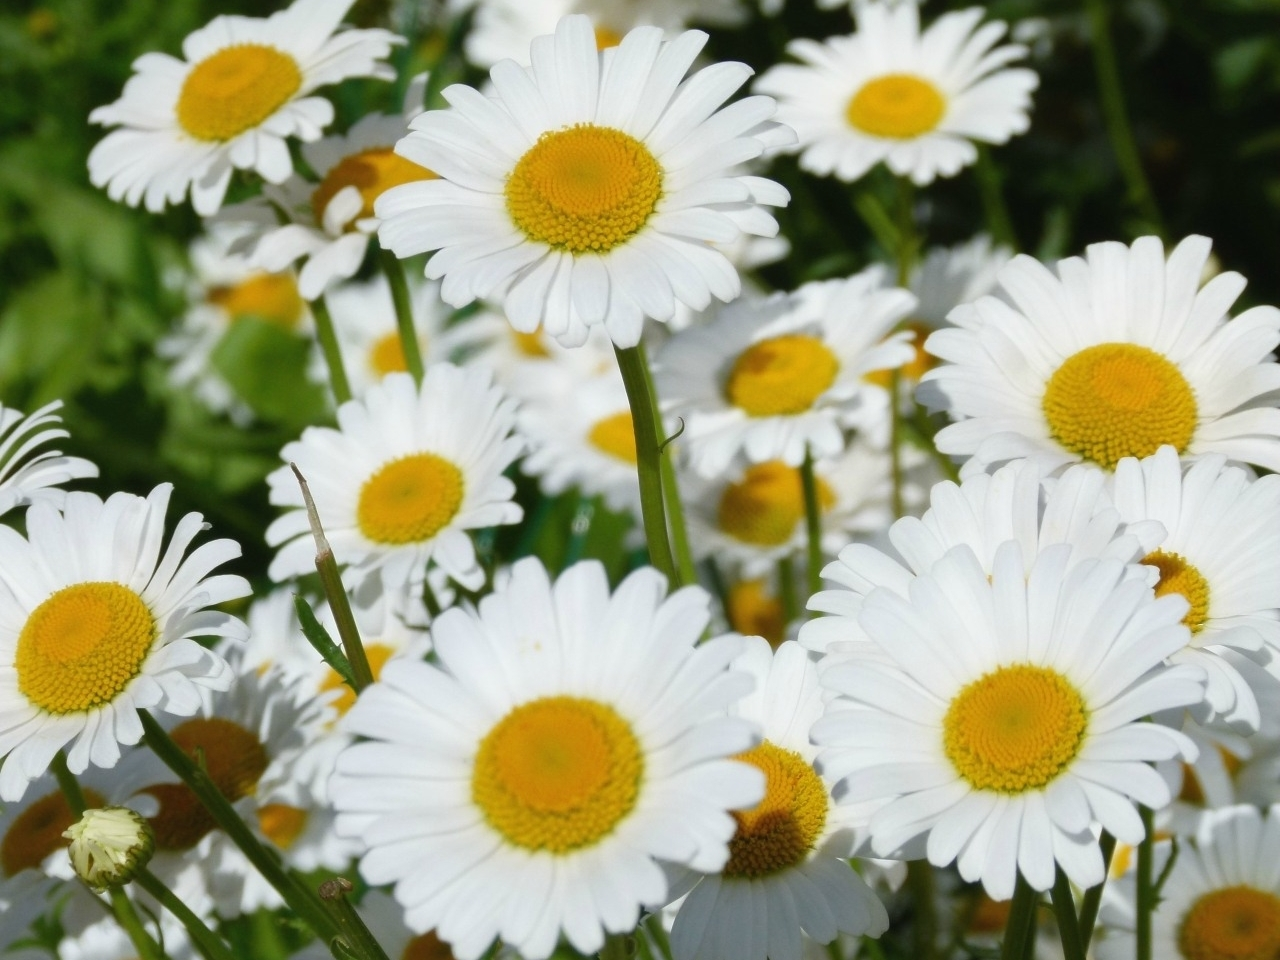 45764 download wallpaper Plants, Flowers, Camomile screensavers and pictures for free